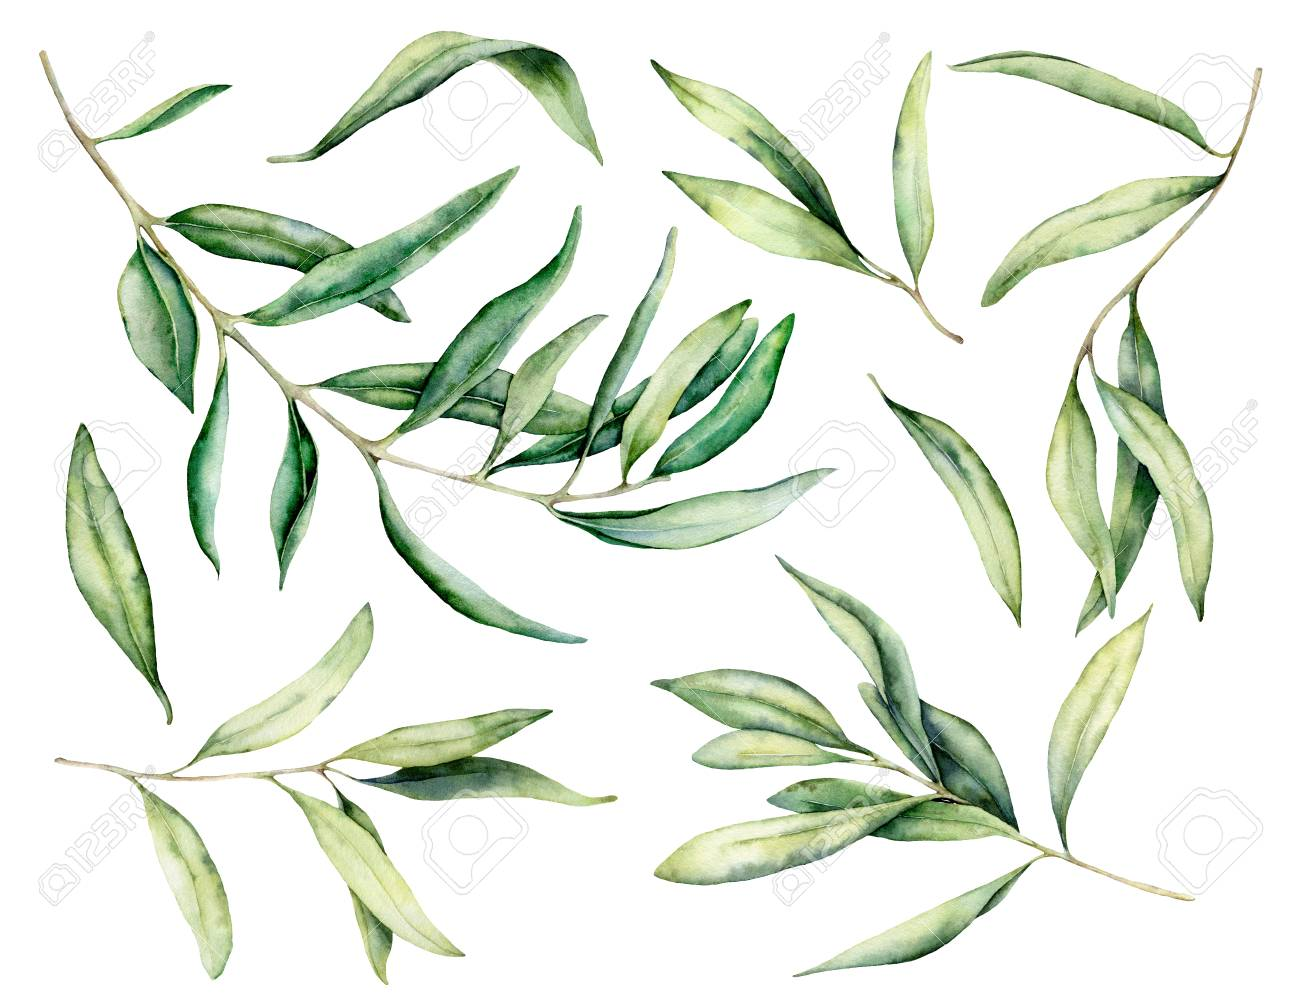 Watercolor olive branch and leaves set. Hand painted floral illustration isolated on white background for design, print, fabric or background. - 121767295